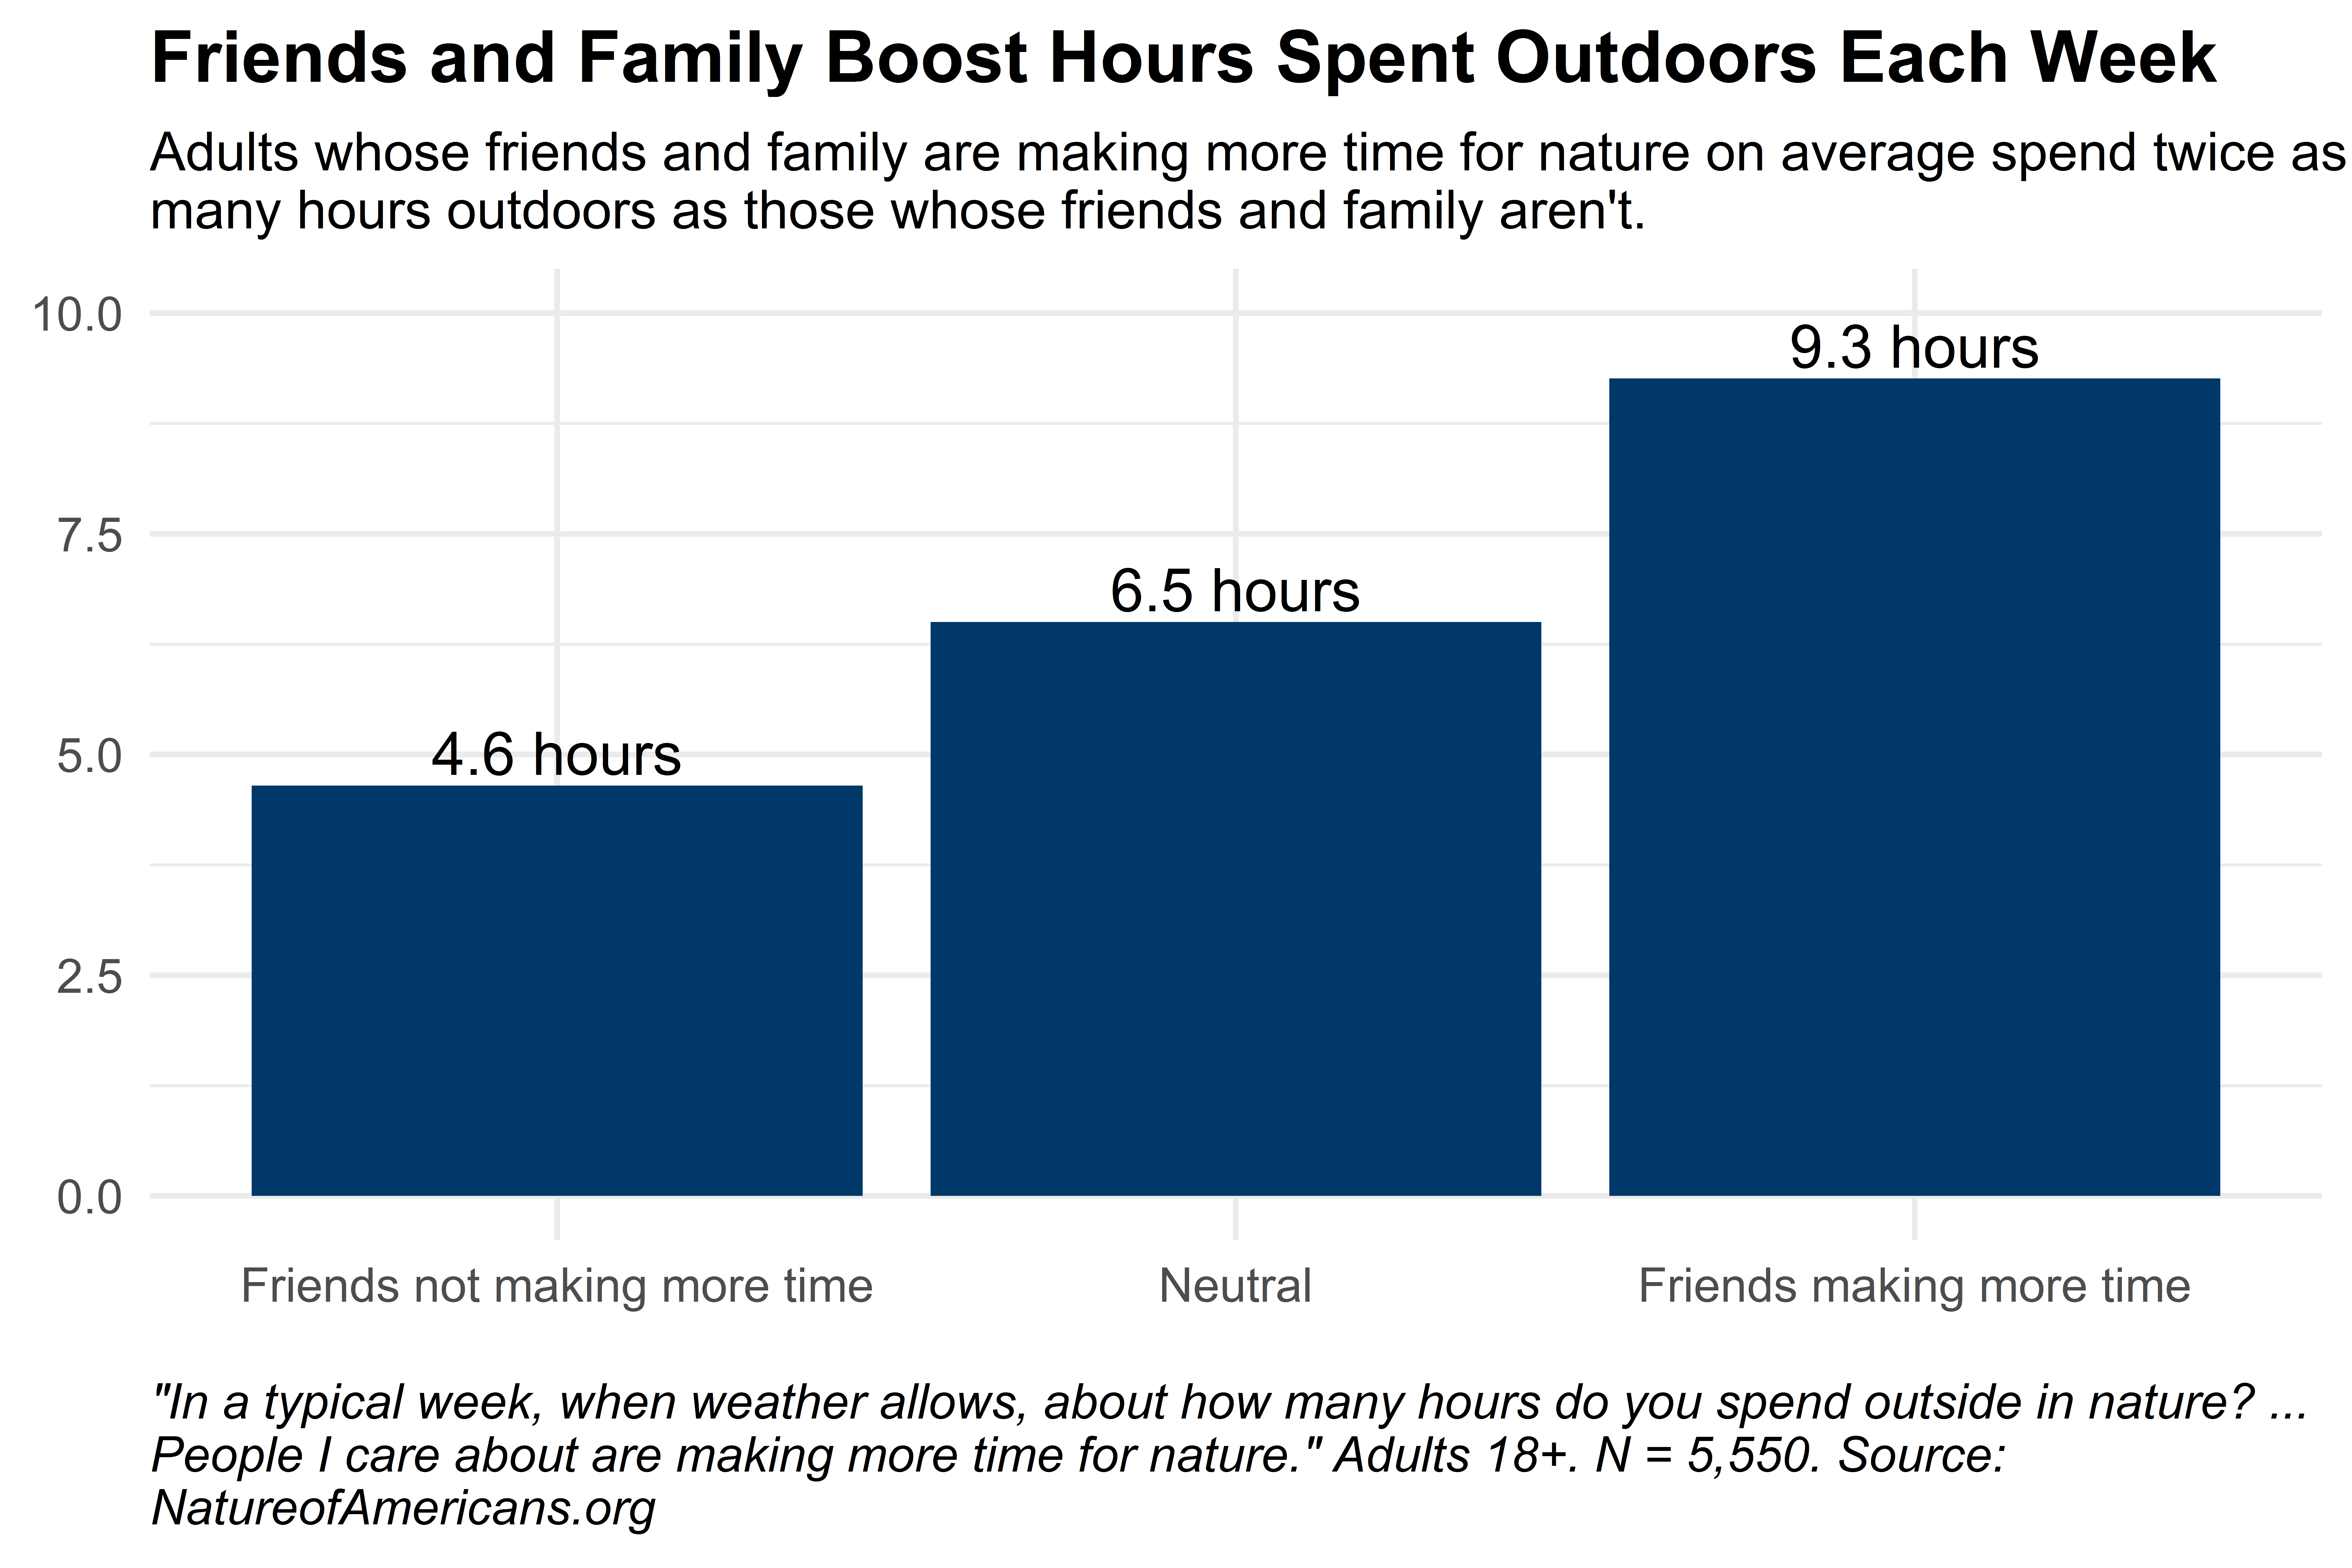 friends and family influence adults amount of time outdoors